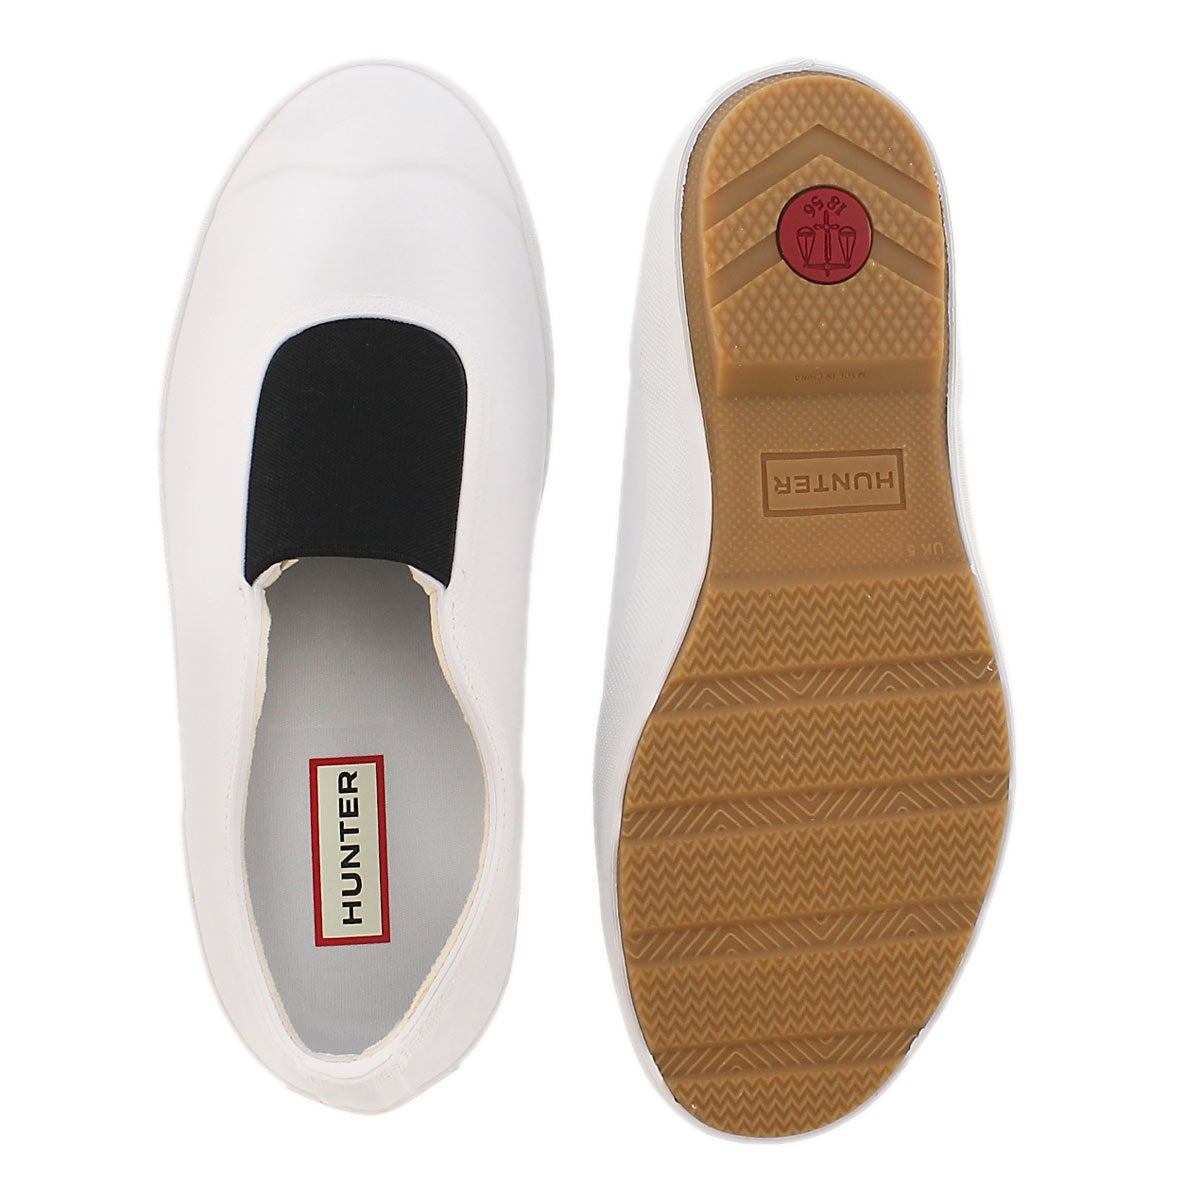 Lds Original Gumsole wht waterproof shoe